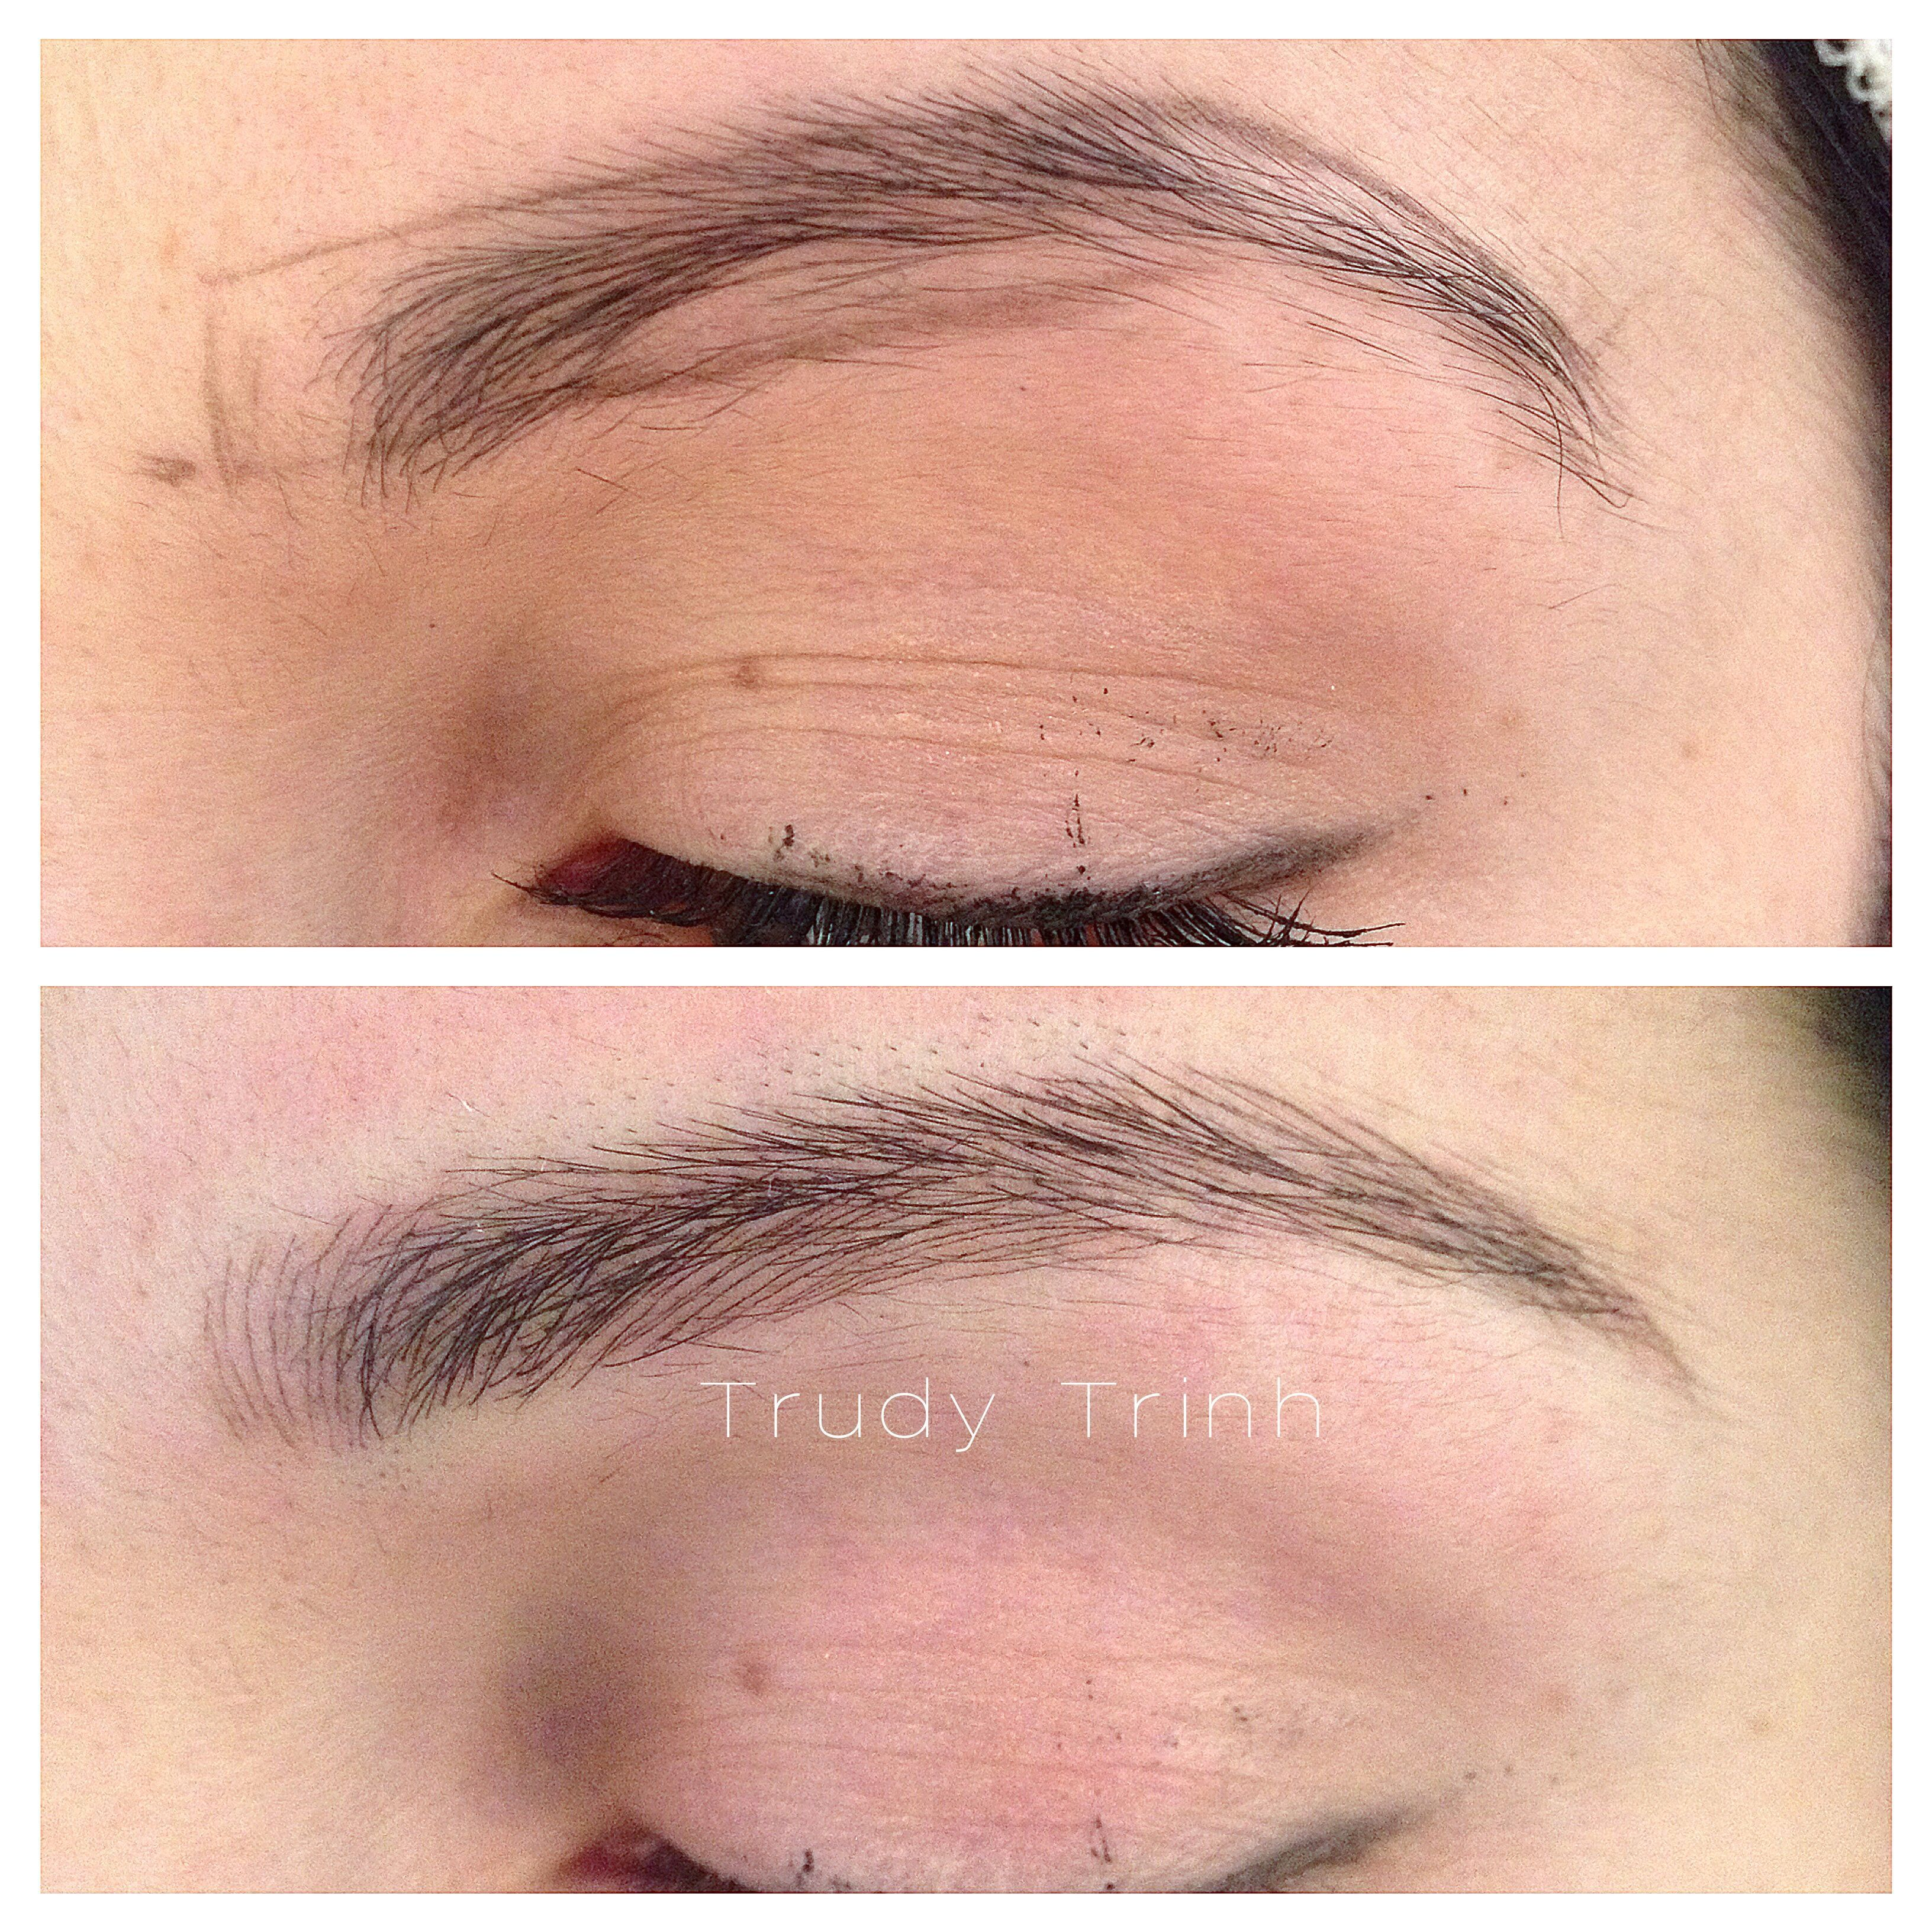 Tried Microblading & Here's What Happened Microblading is the latest hack for fuller brows | microblading | before and after | beauty hackMicroblading is the latest hack for fuller brows | microblading | before and after | beauty hack